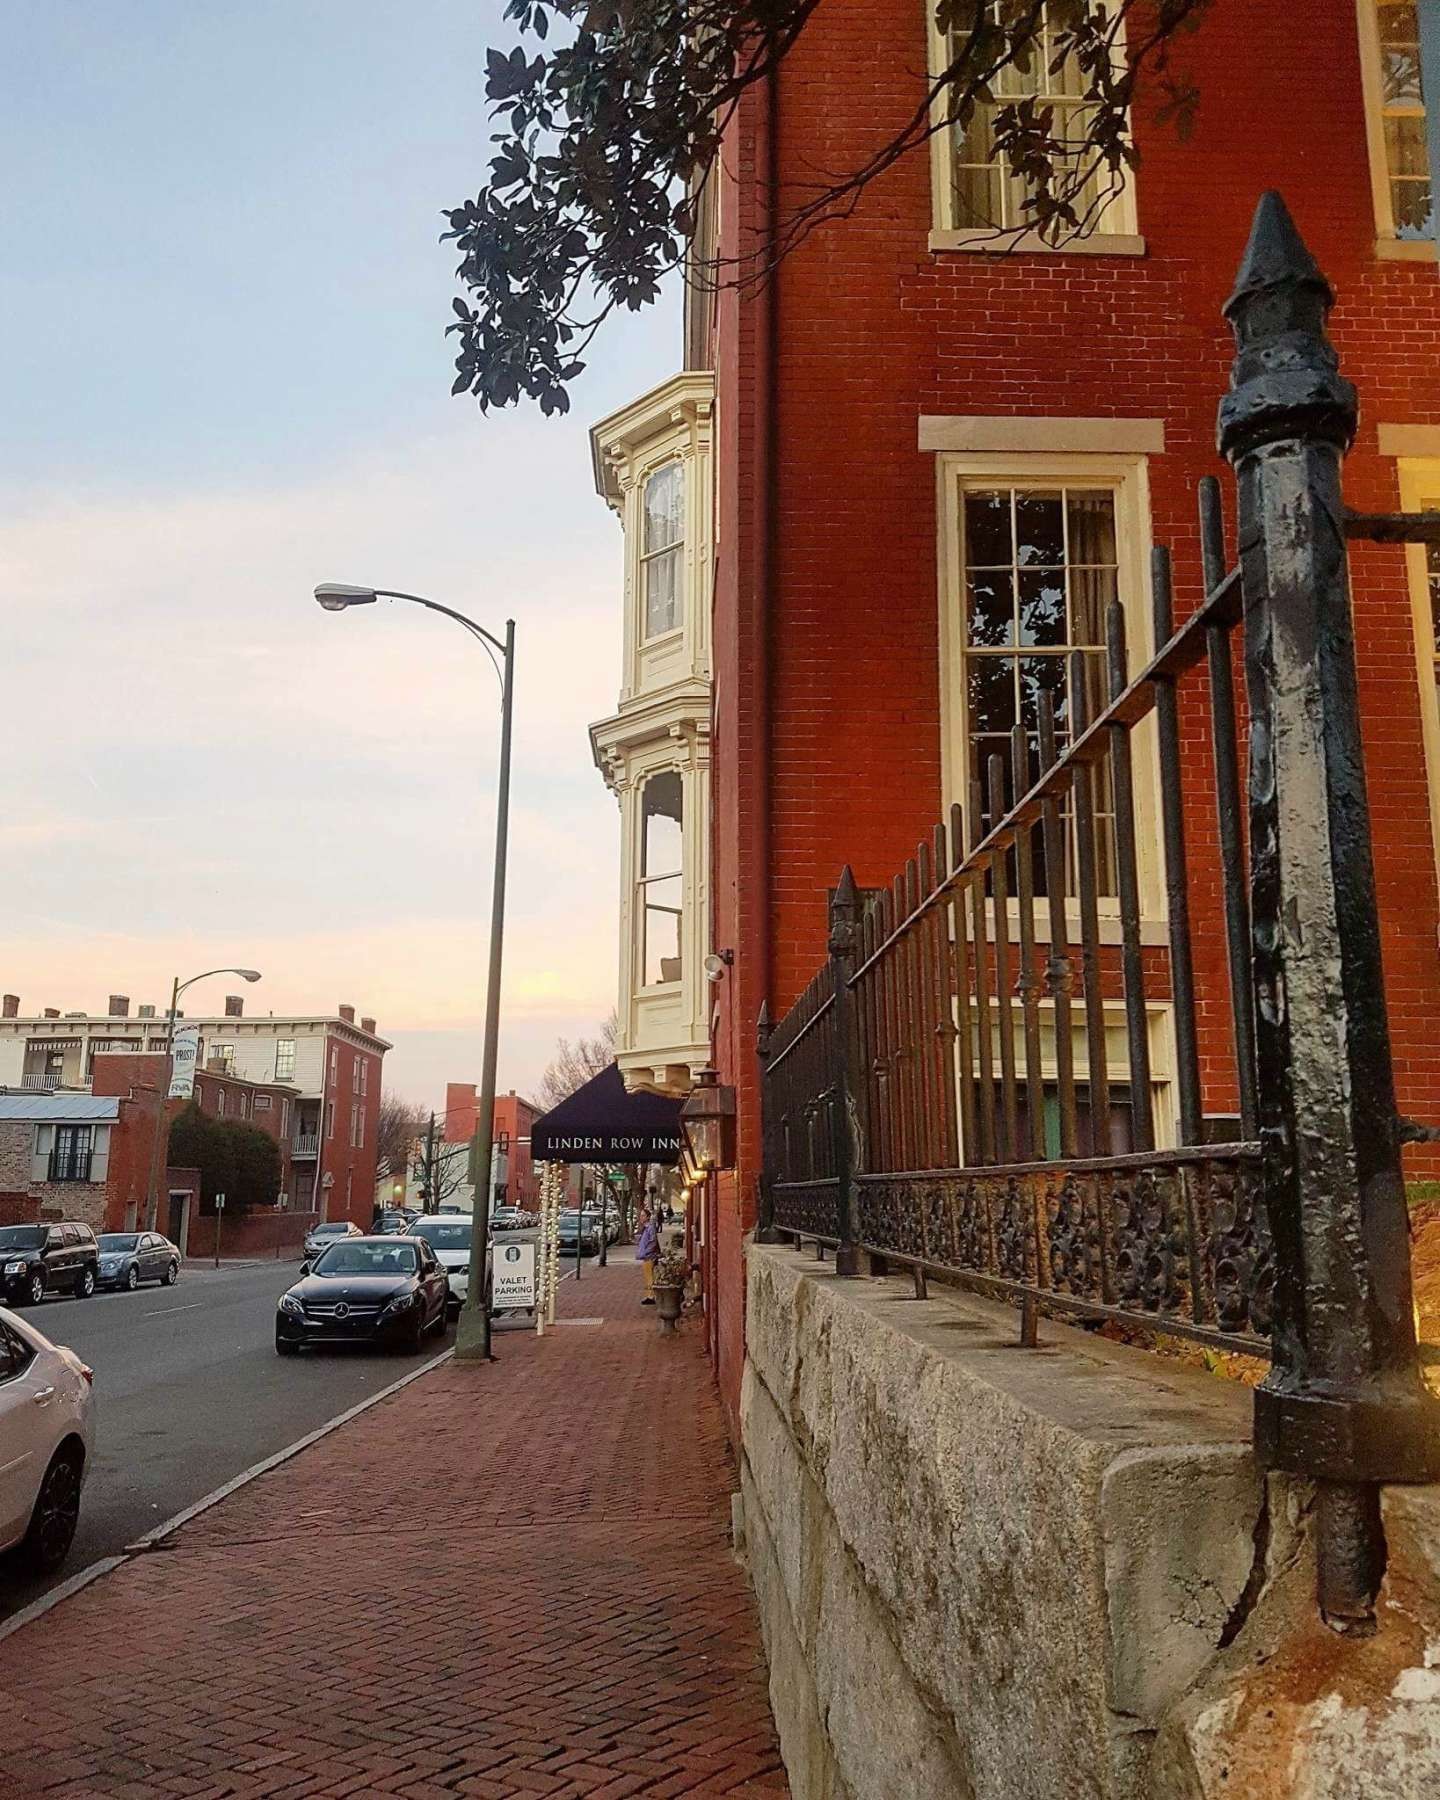 Linden Row Inn & Max's on Broad in Richmond, VA - I'm Fixin' To - @mbg0112